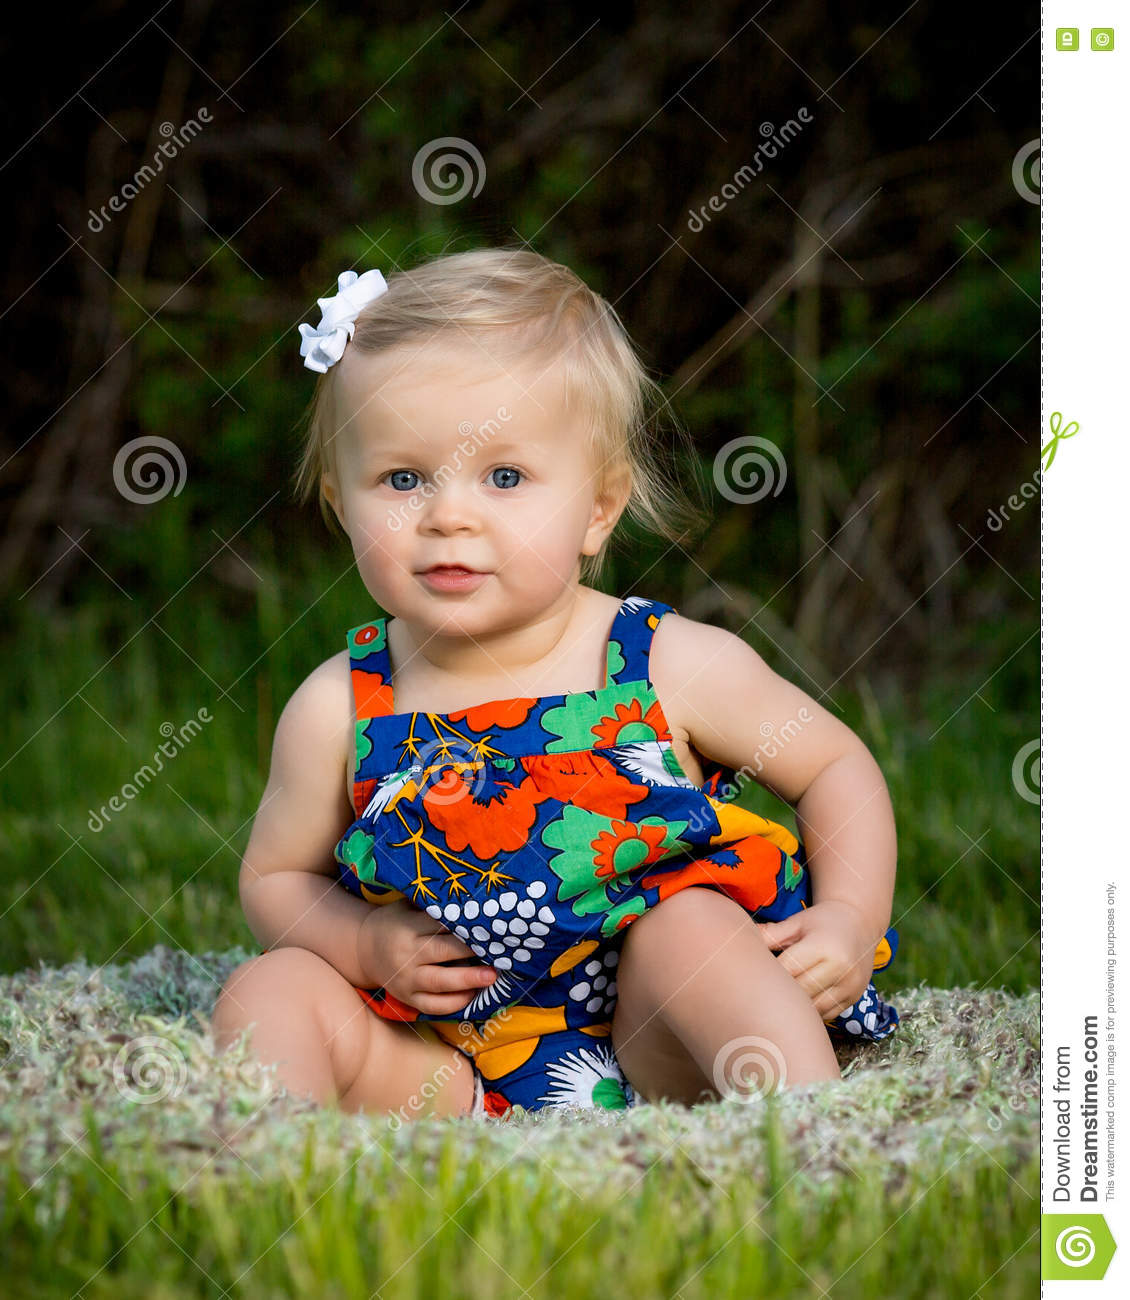 Cute toddler sitting in flowered dress